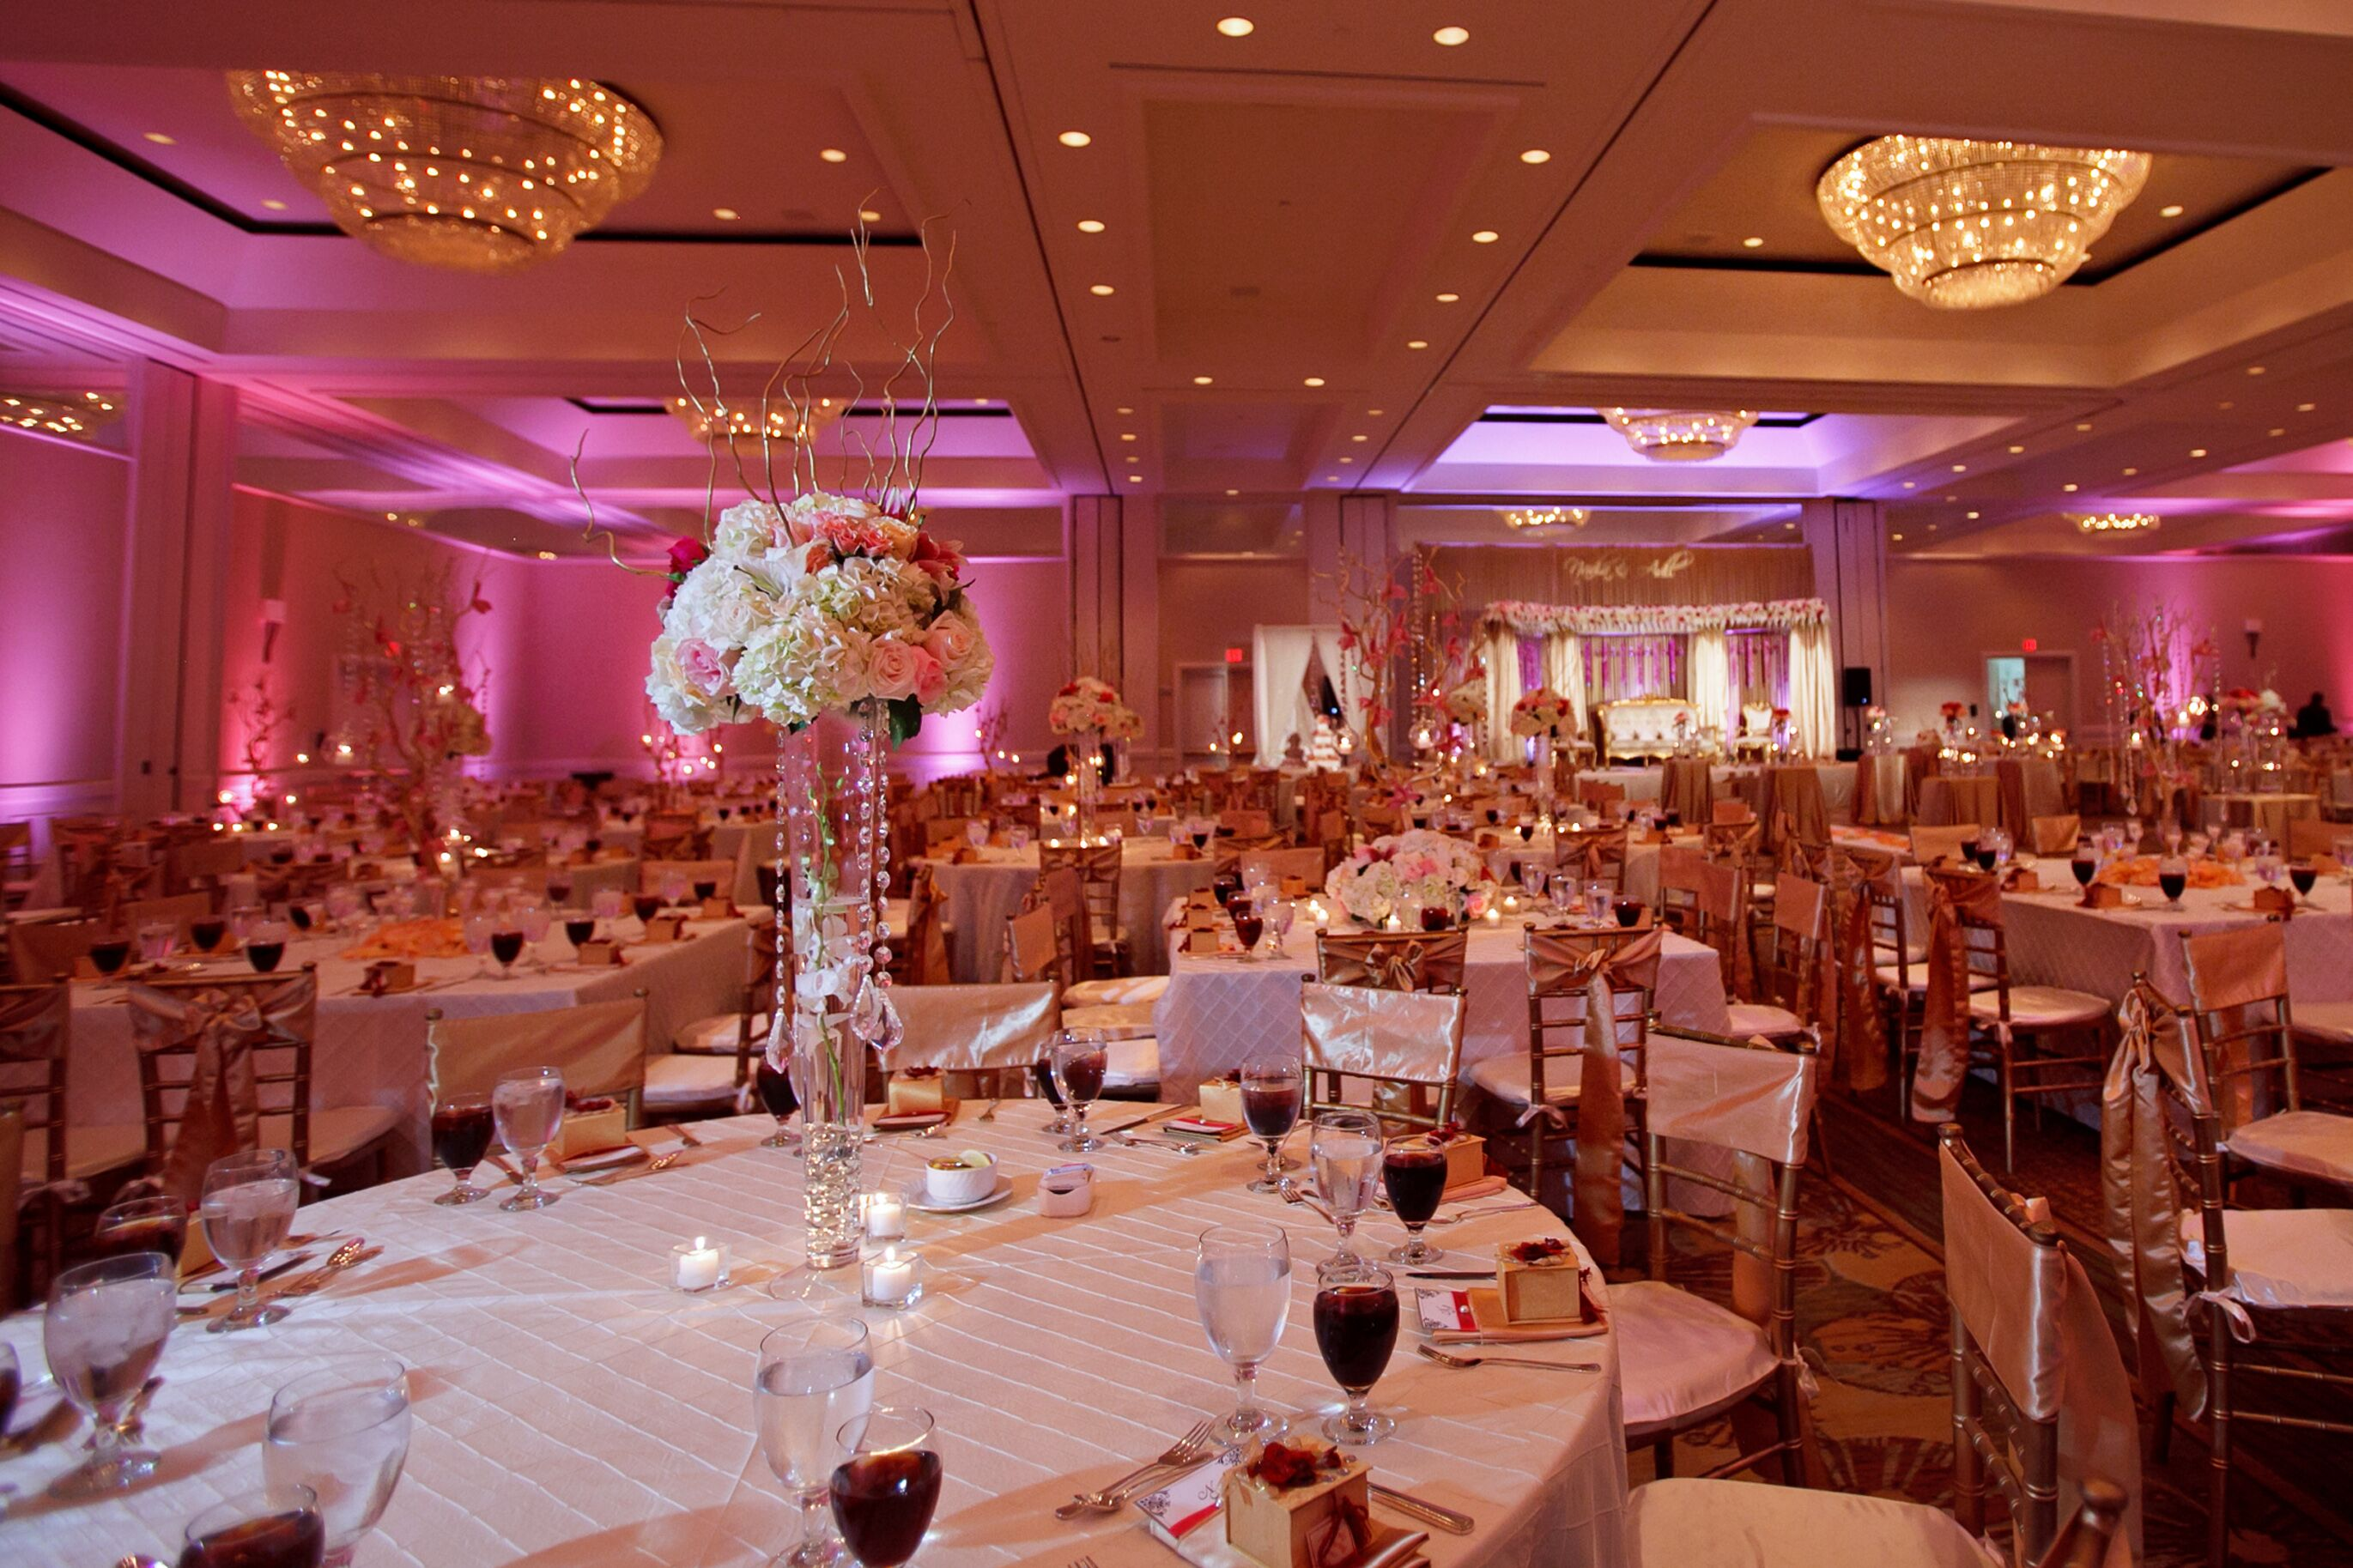 Wedding reception venues in tampa fl the knot grand hyatt tampa bay junglespirit Image collections